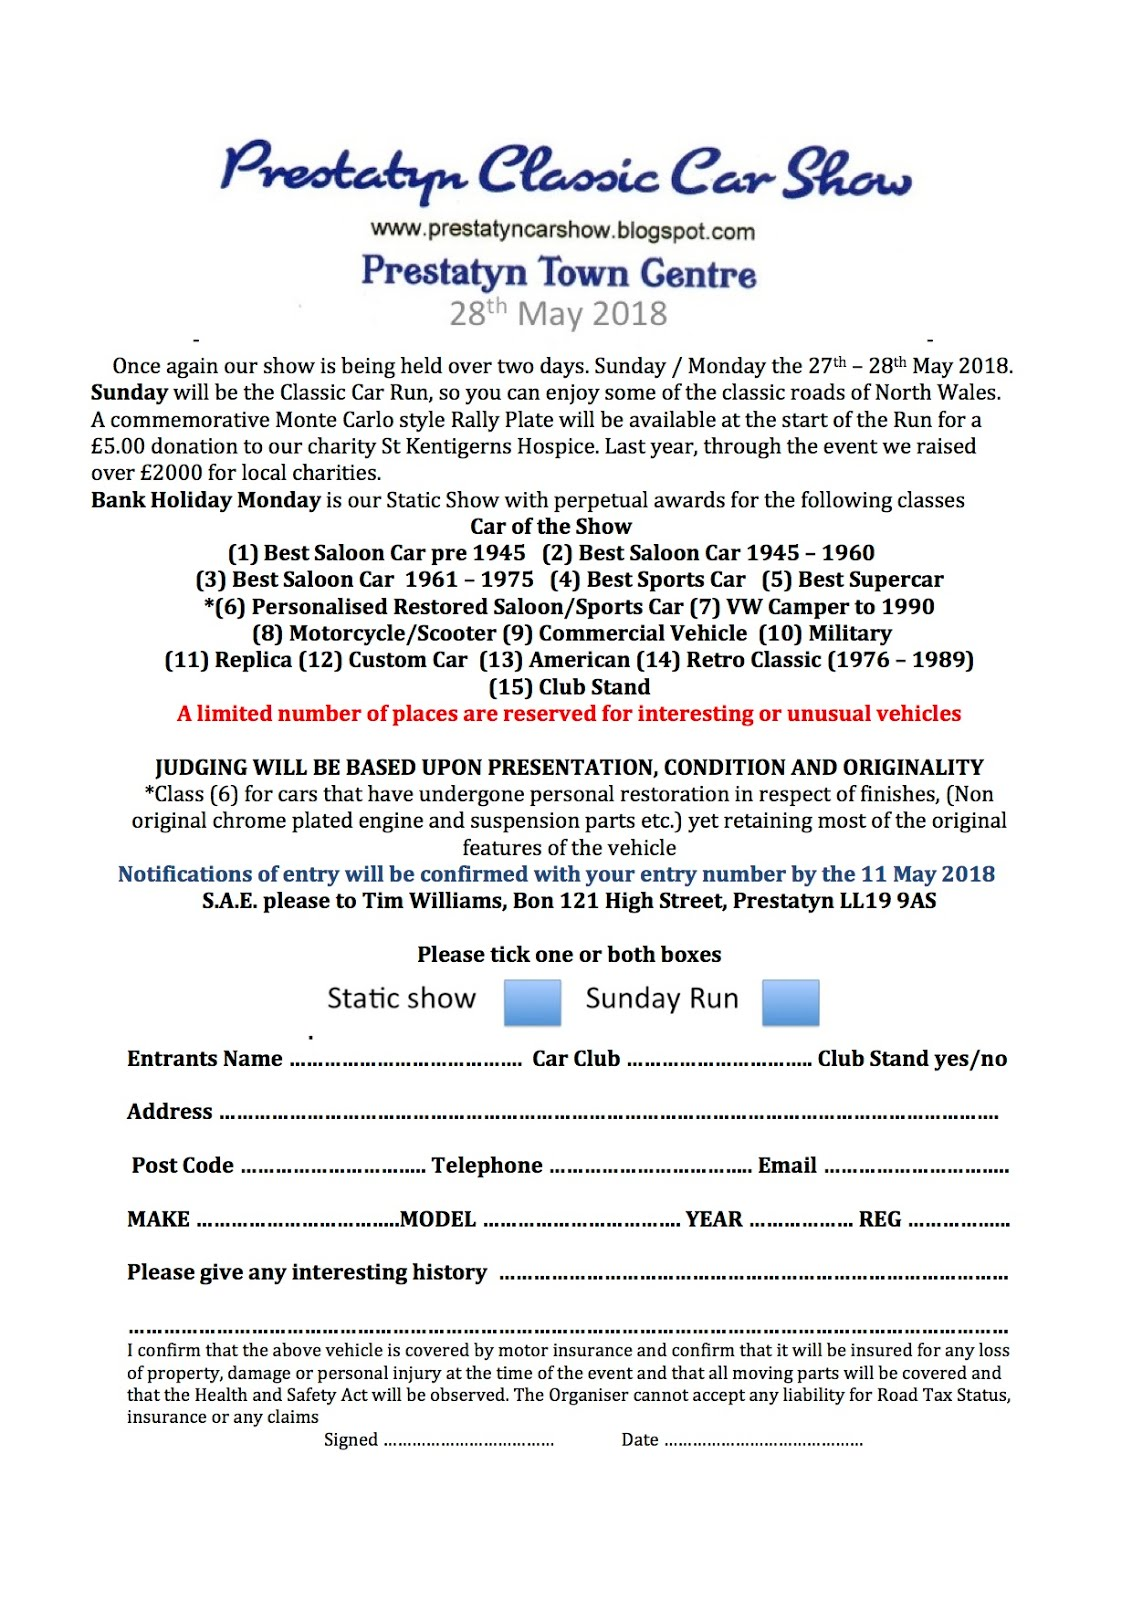 download an entry form HERE